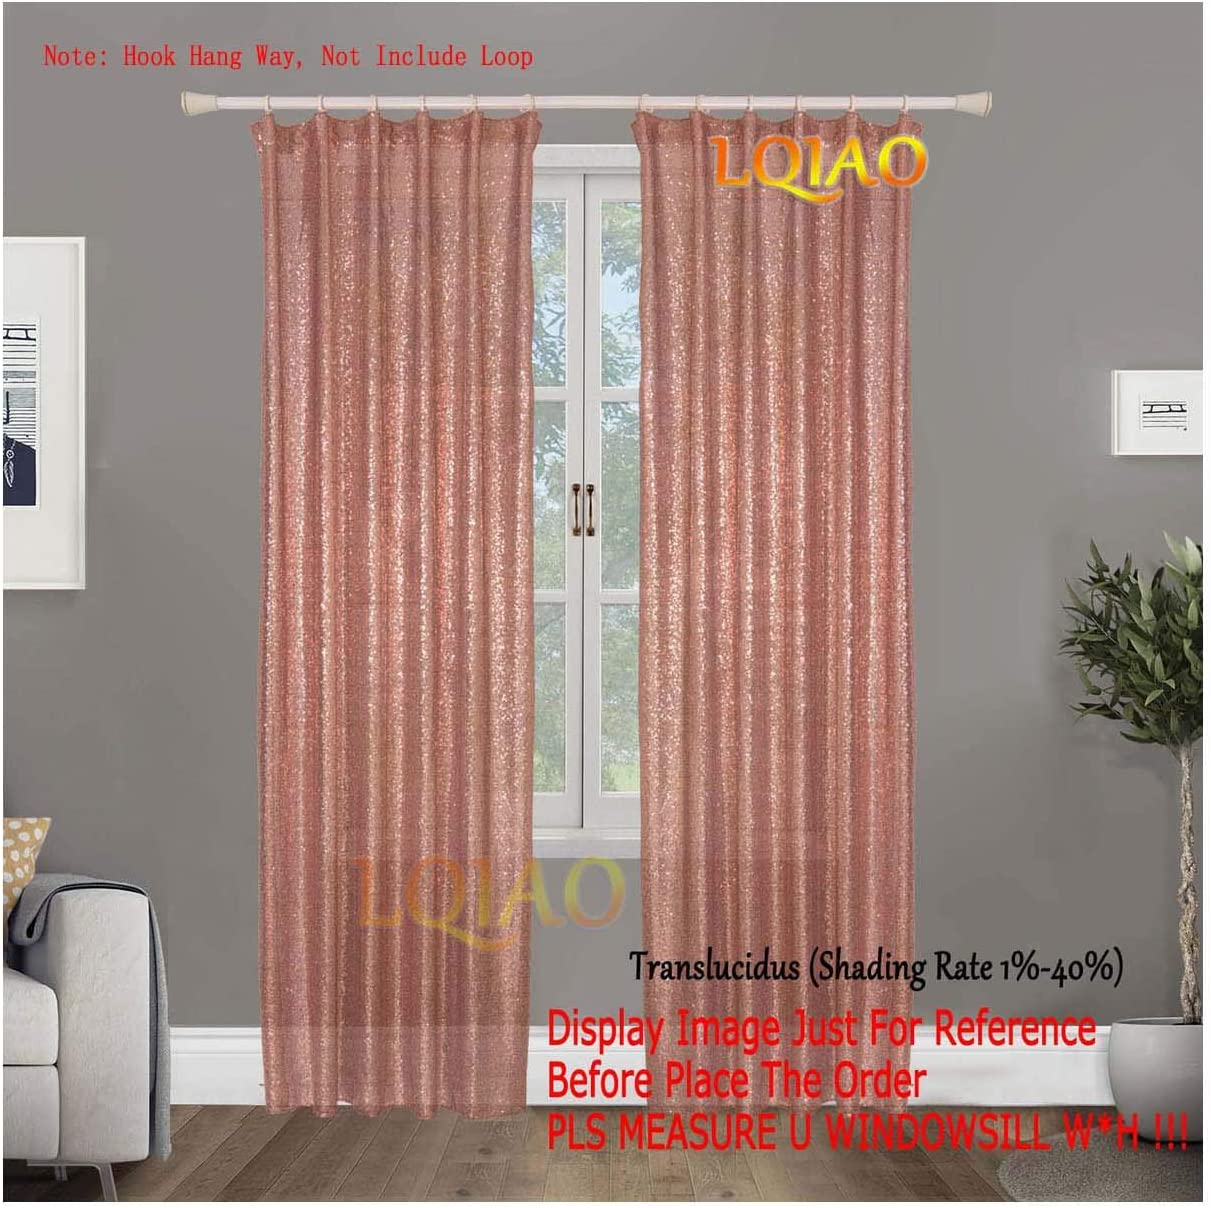 2PCS Rose Gold Sequin Curtain Backdrop-W60xL250cm Shimmer Sequin Fabric Photography Backdrop Luxury Curtains for Bedroom Window Curtains Living Room Elegant Drapes Curtains